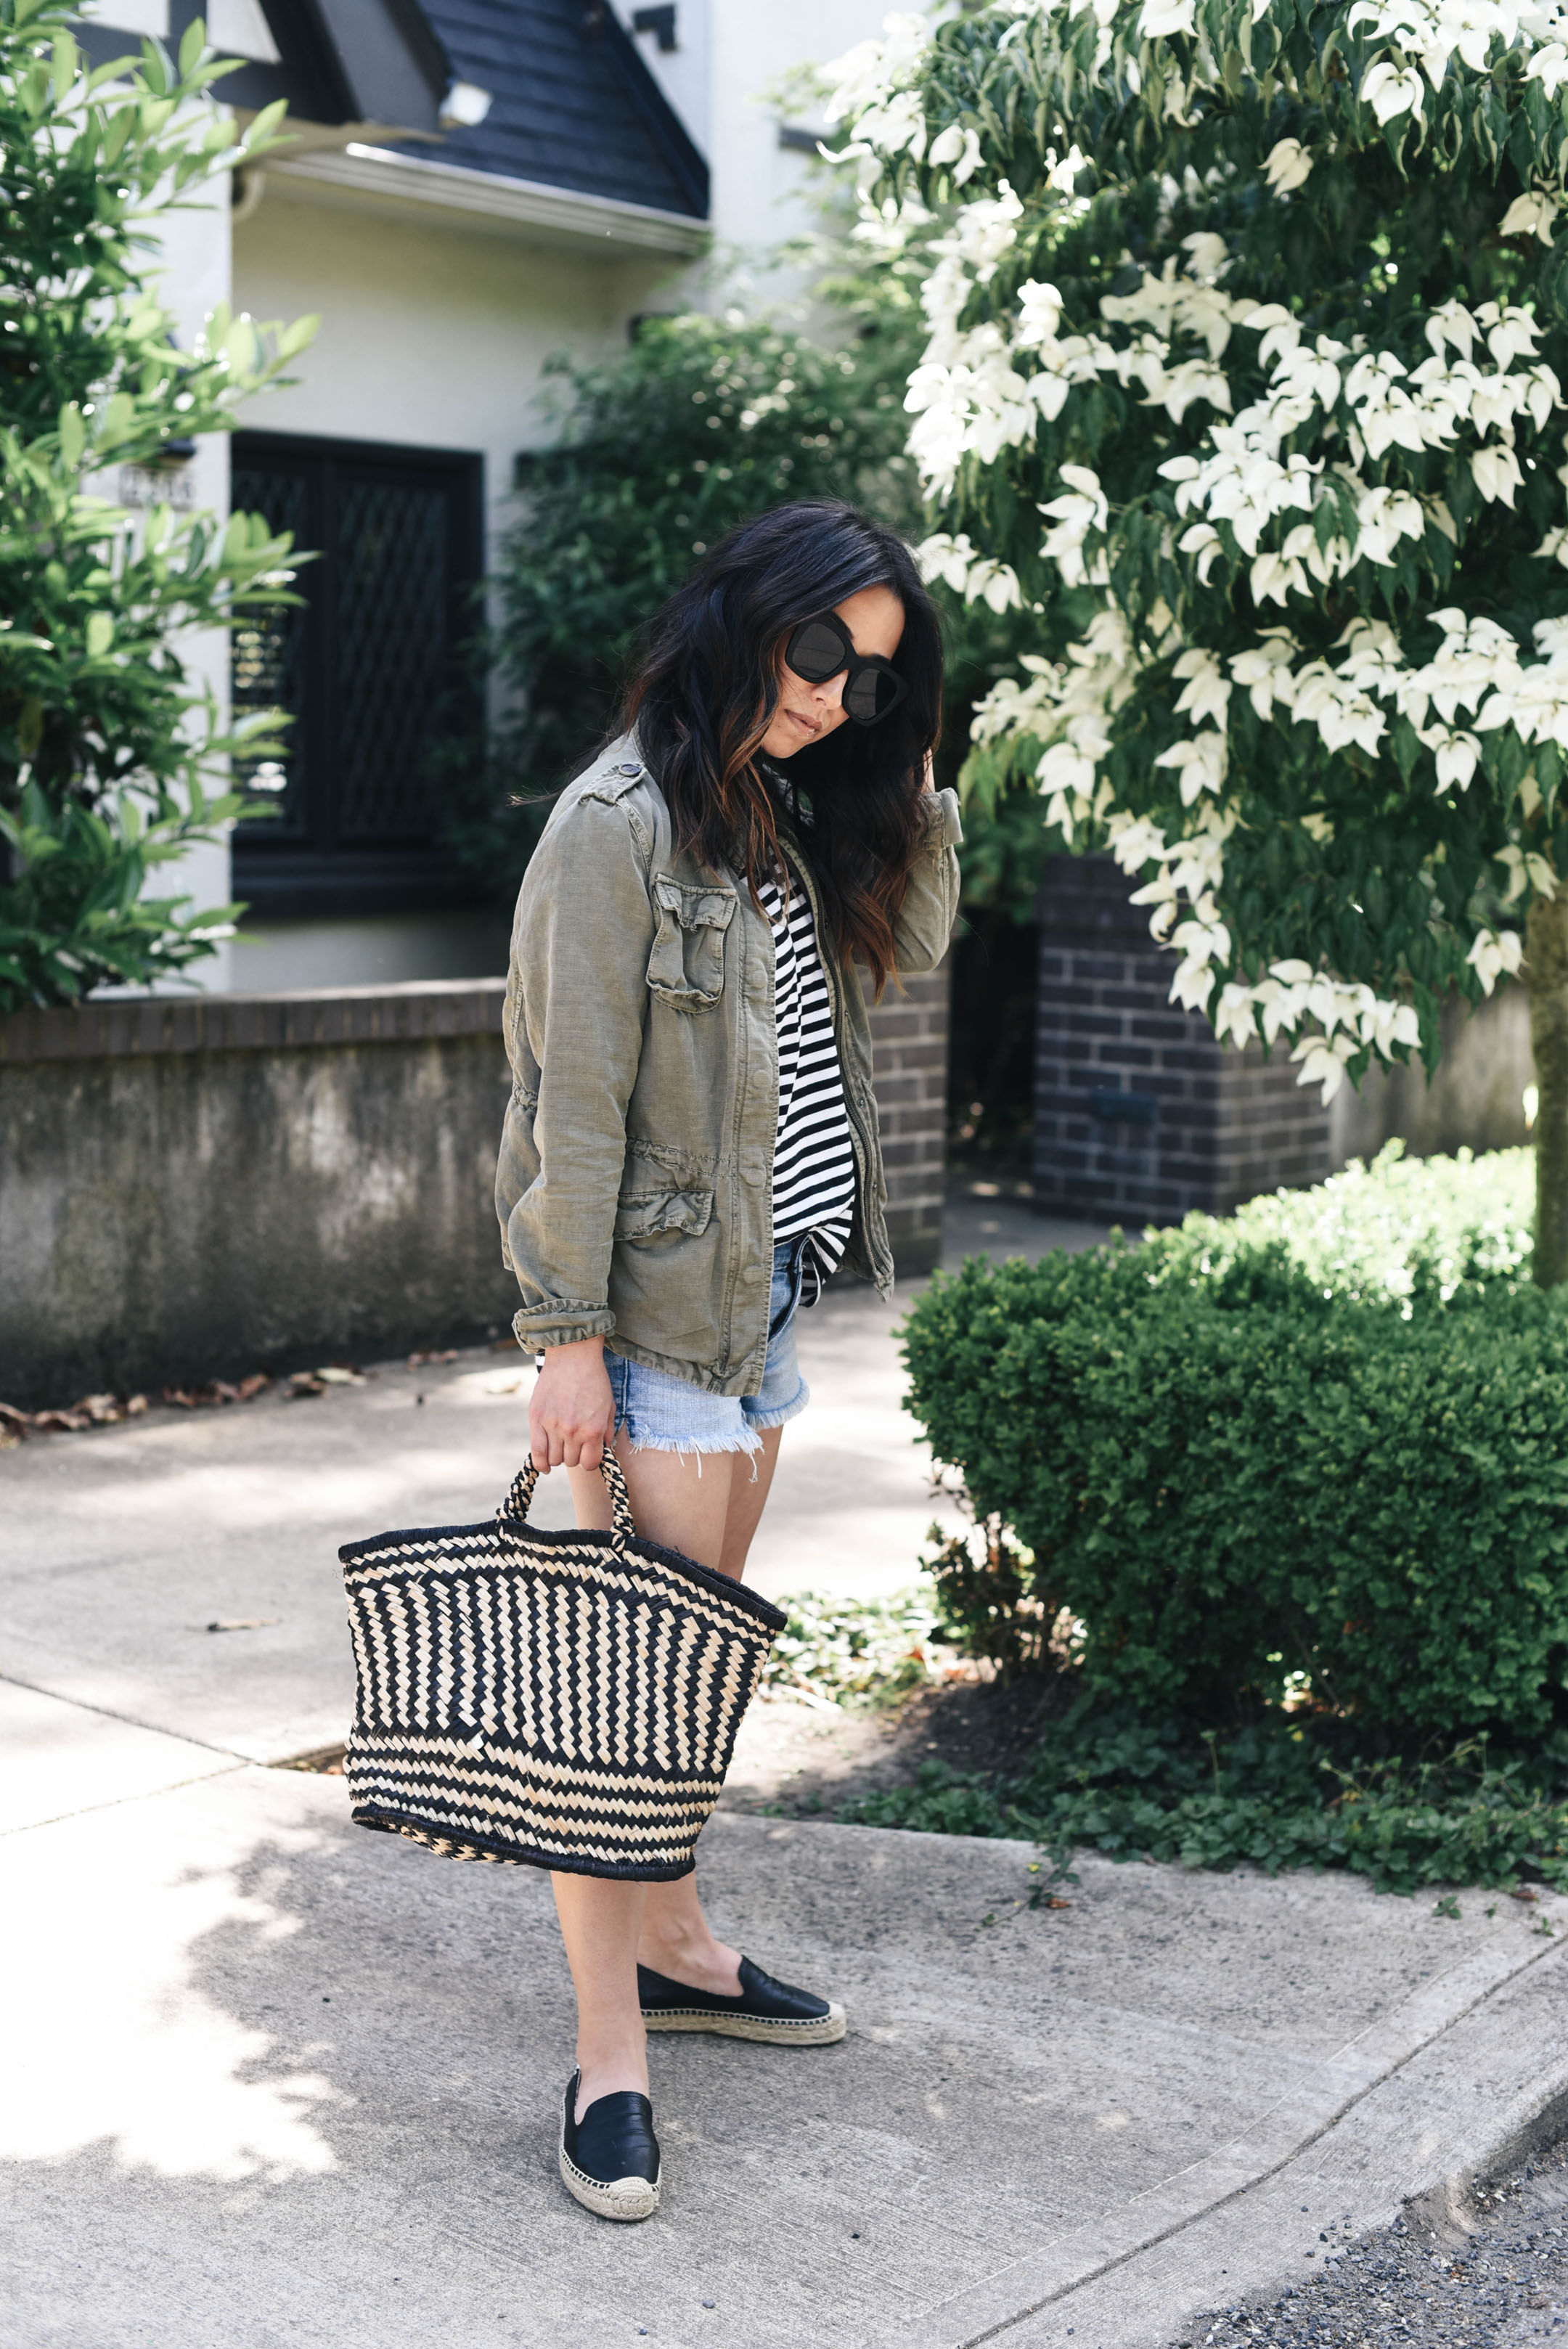 Utility jacket styed with shorts